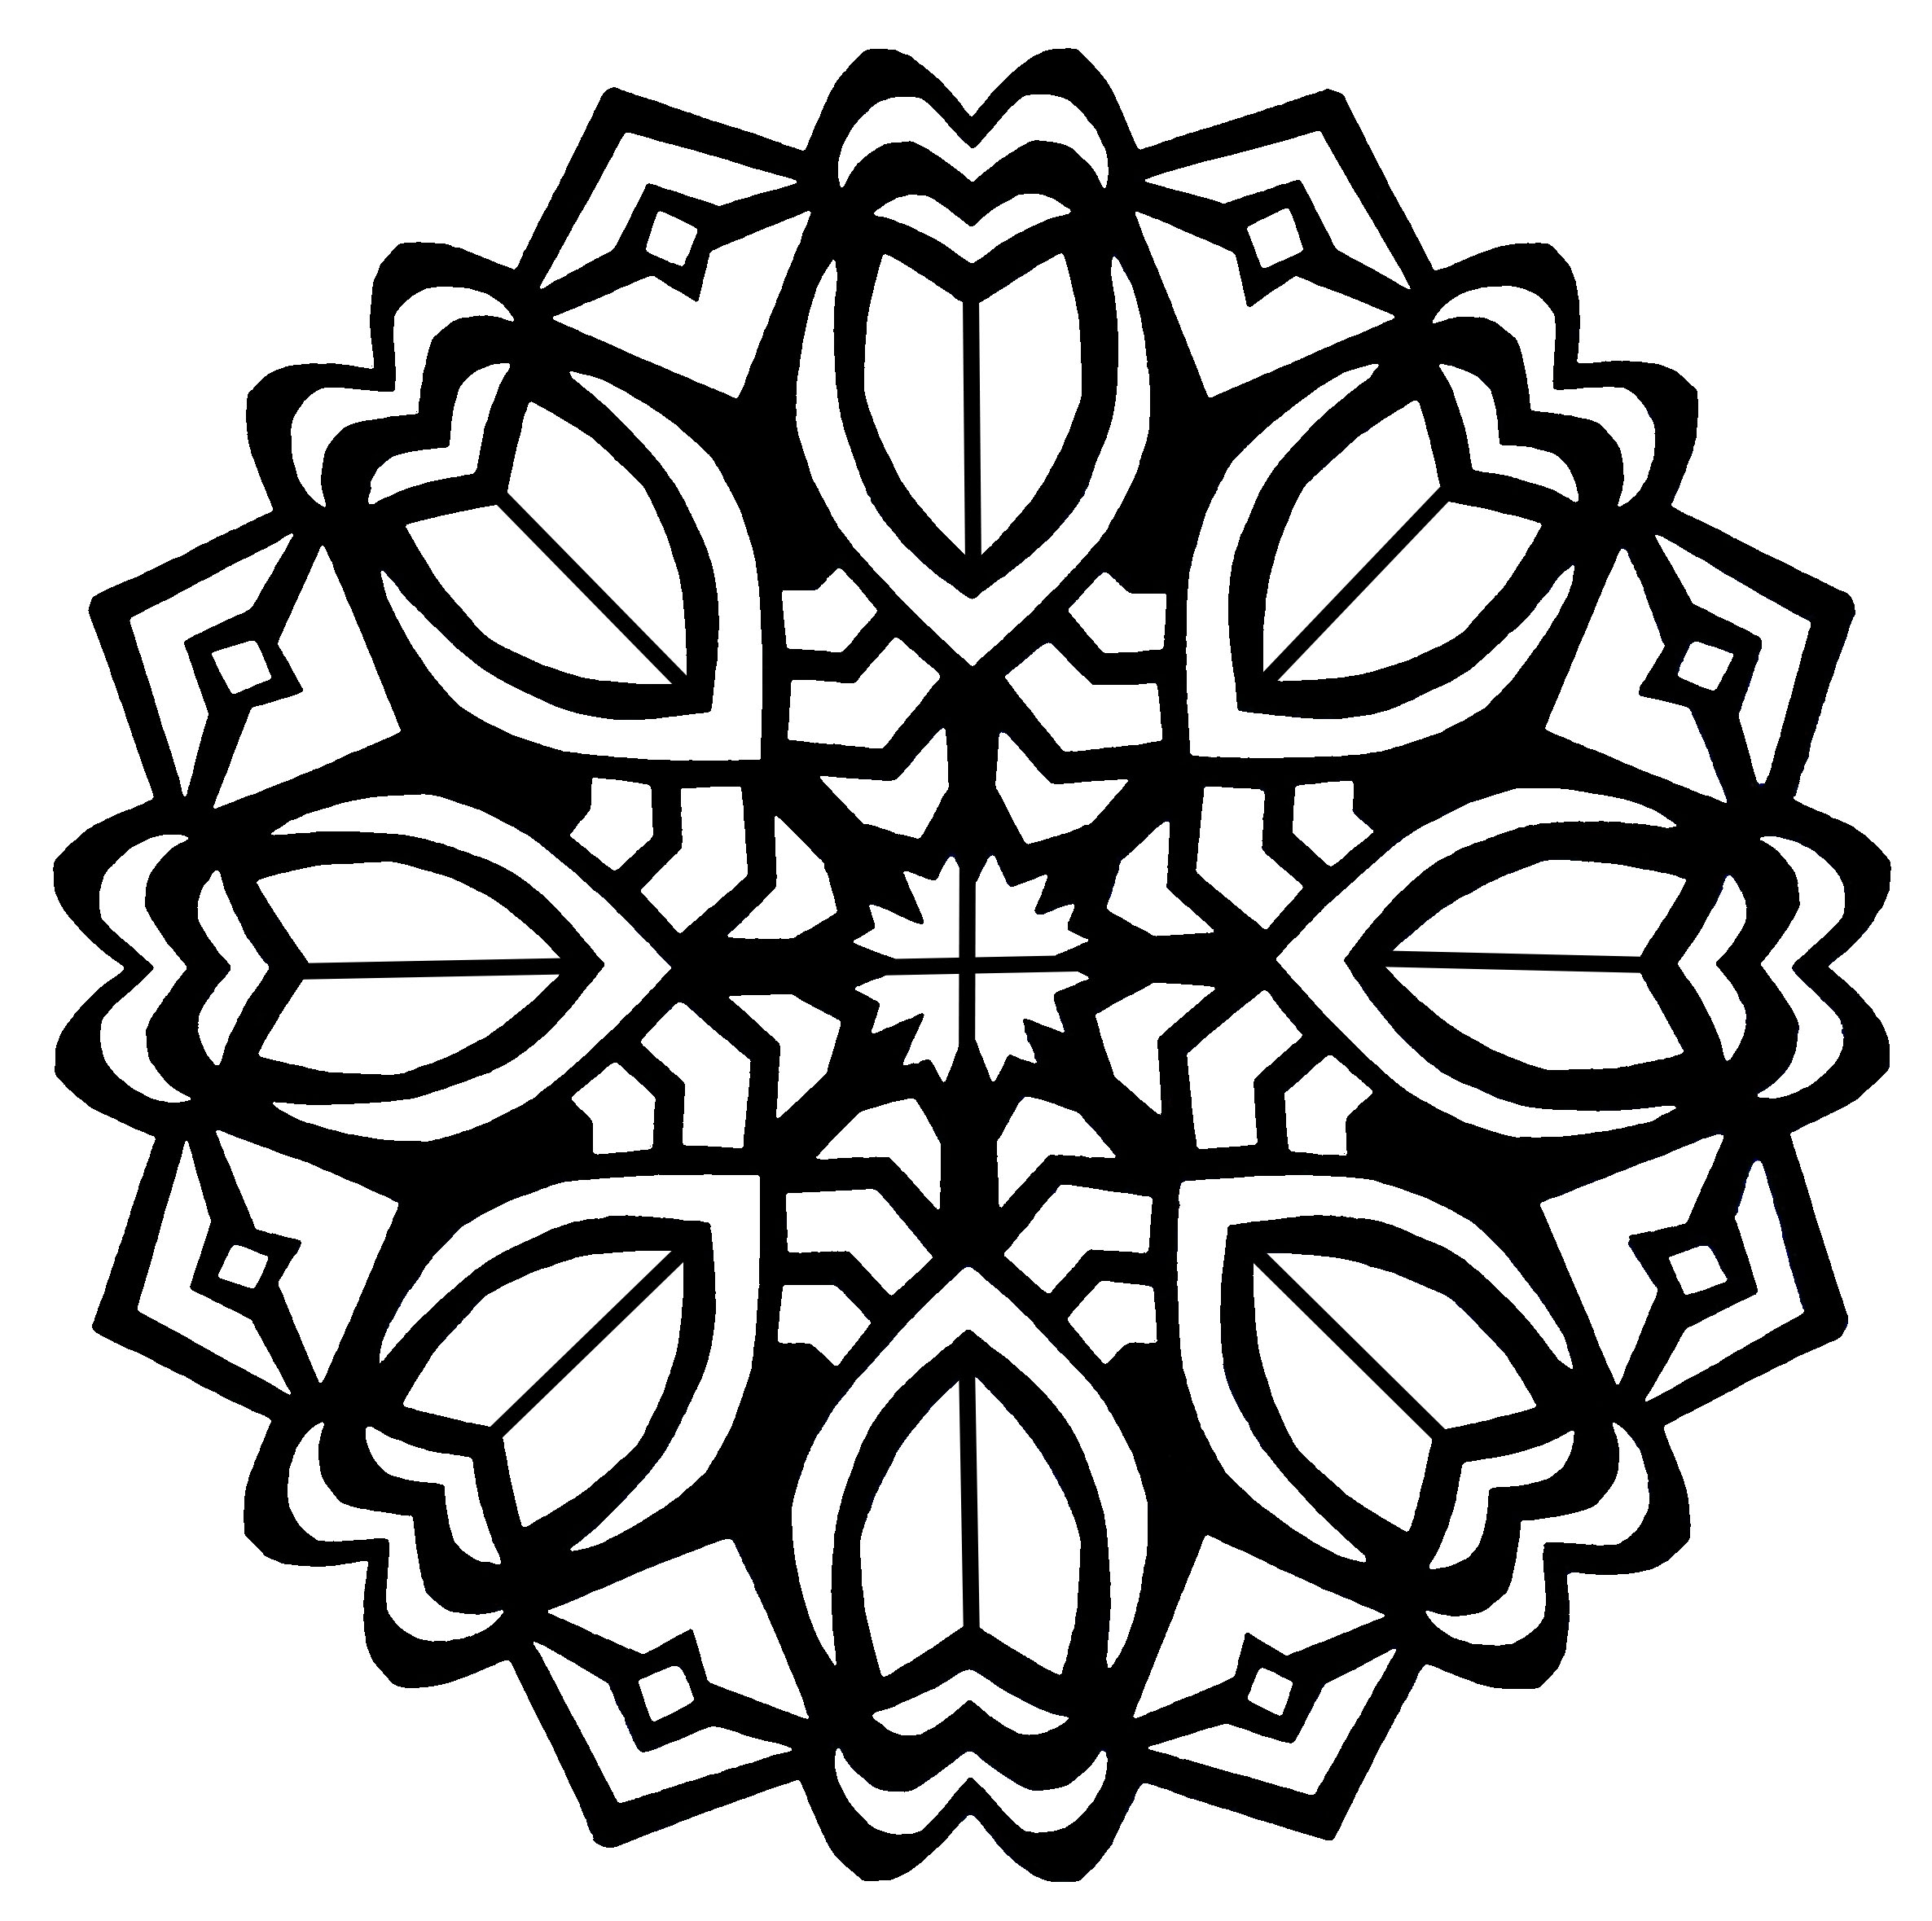 flower adult coloring pages - flower mandala coloring pages